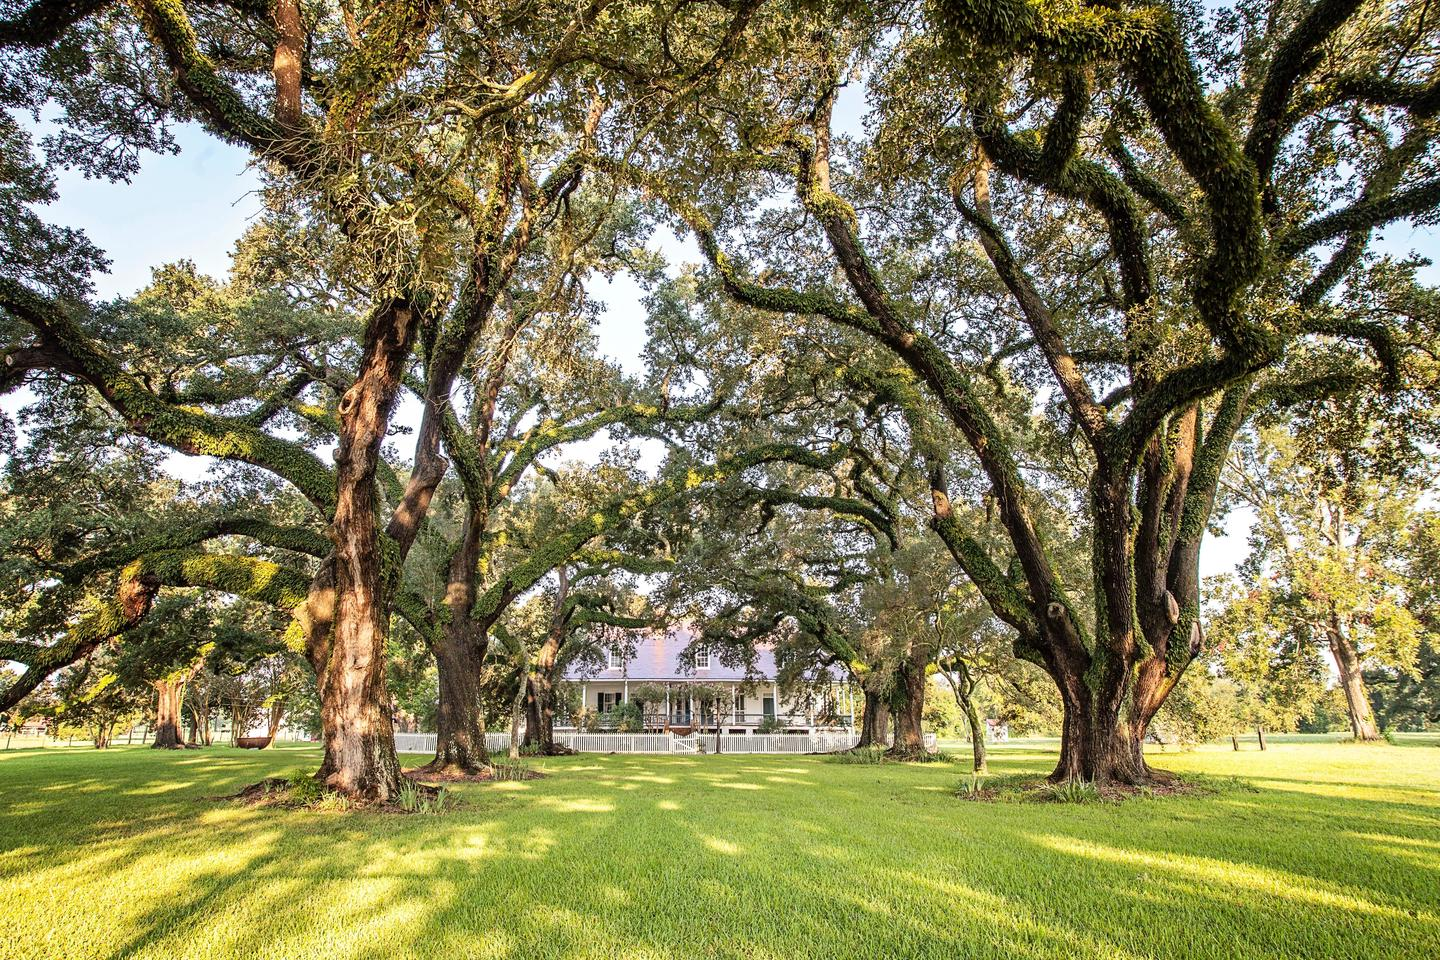 Oak AlleeThe Oak Allee, planted in the mid-1820s, stretches from the Cane River to the Oakland Plantation Main House.